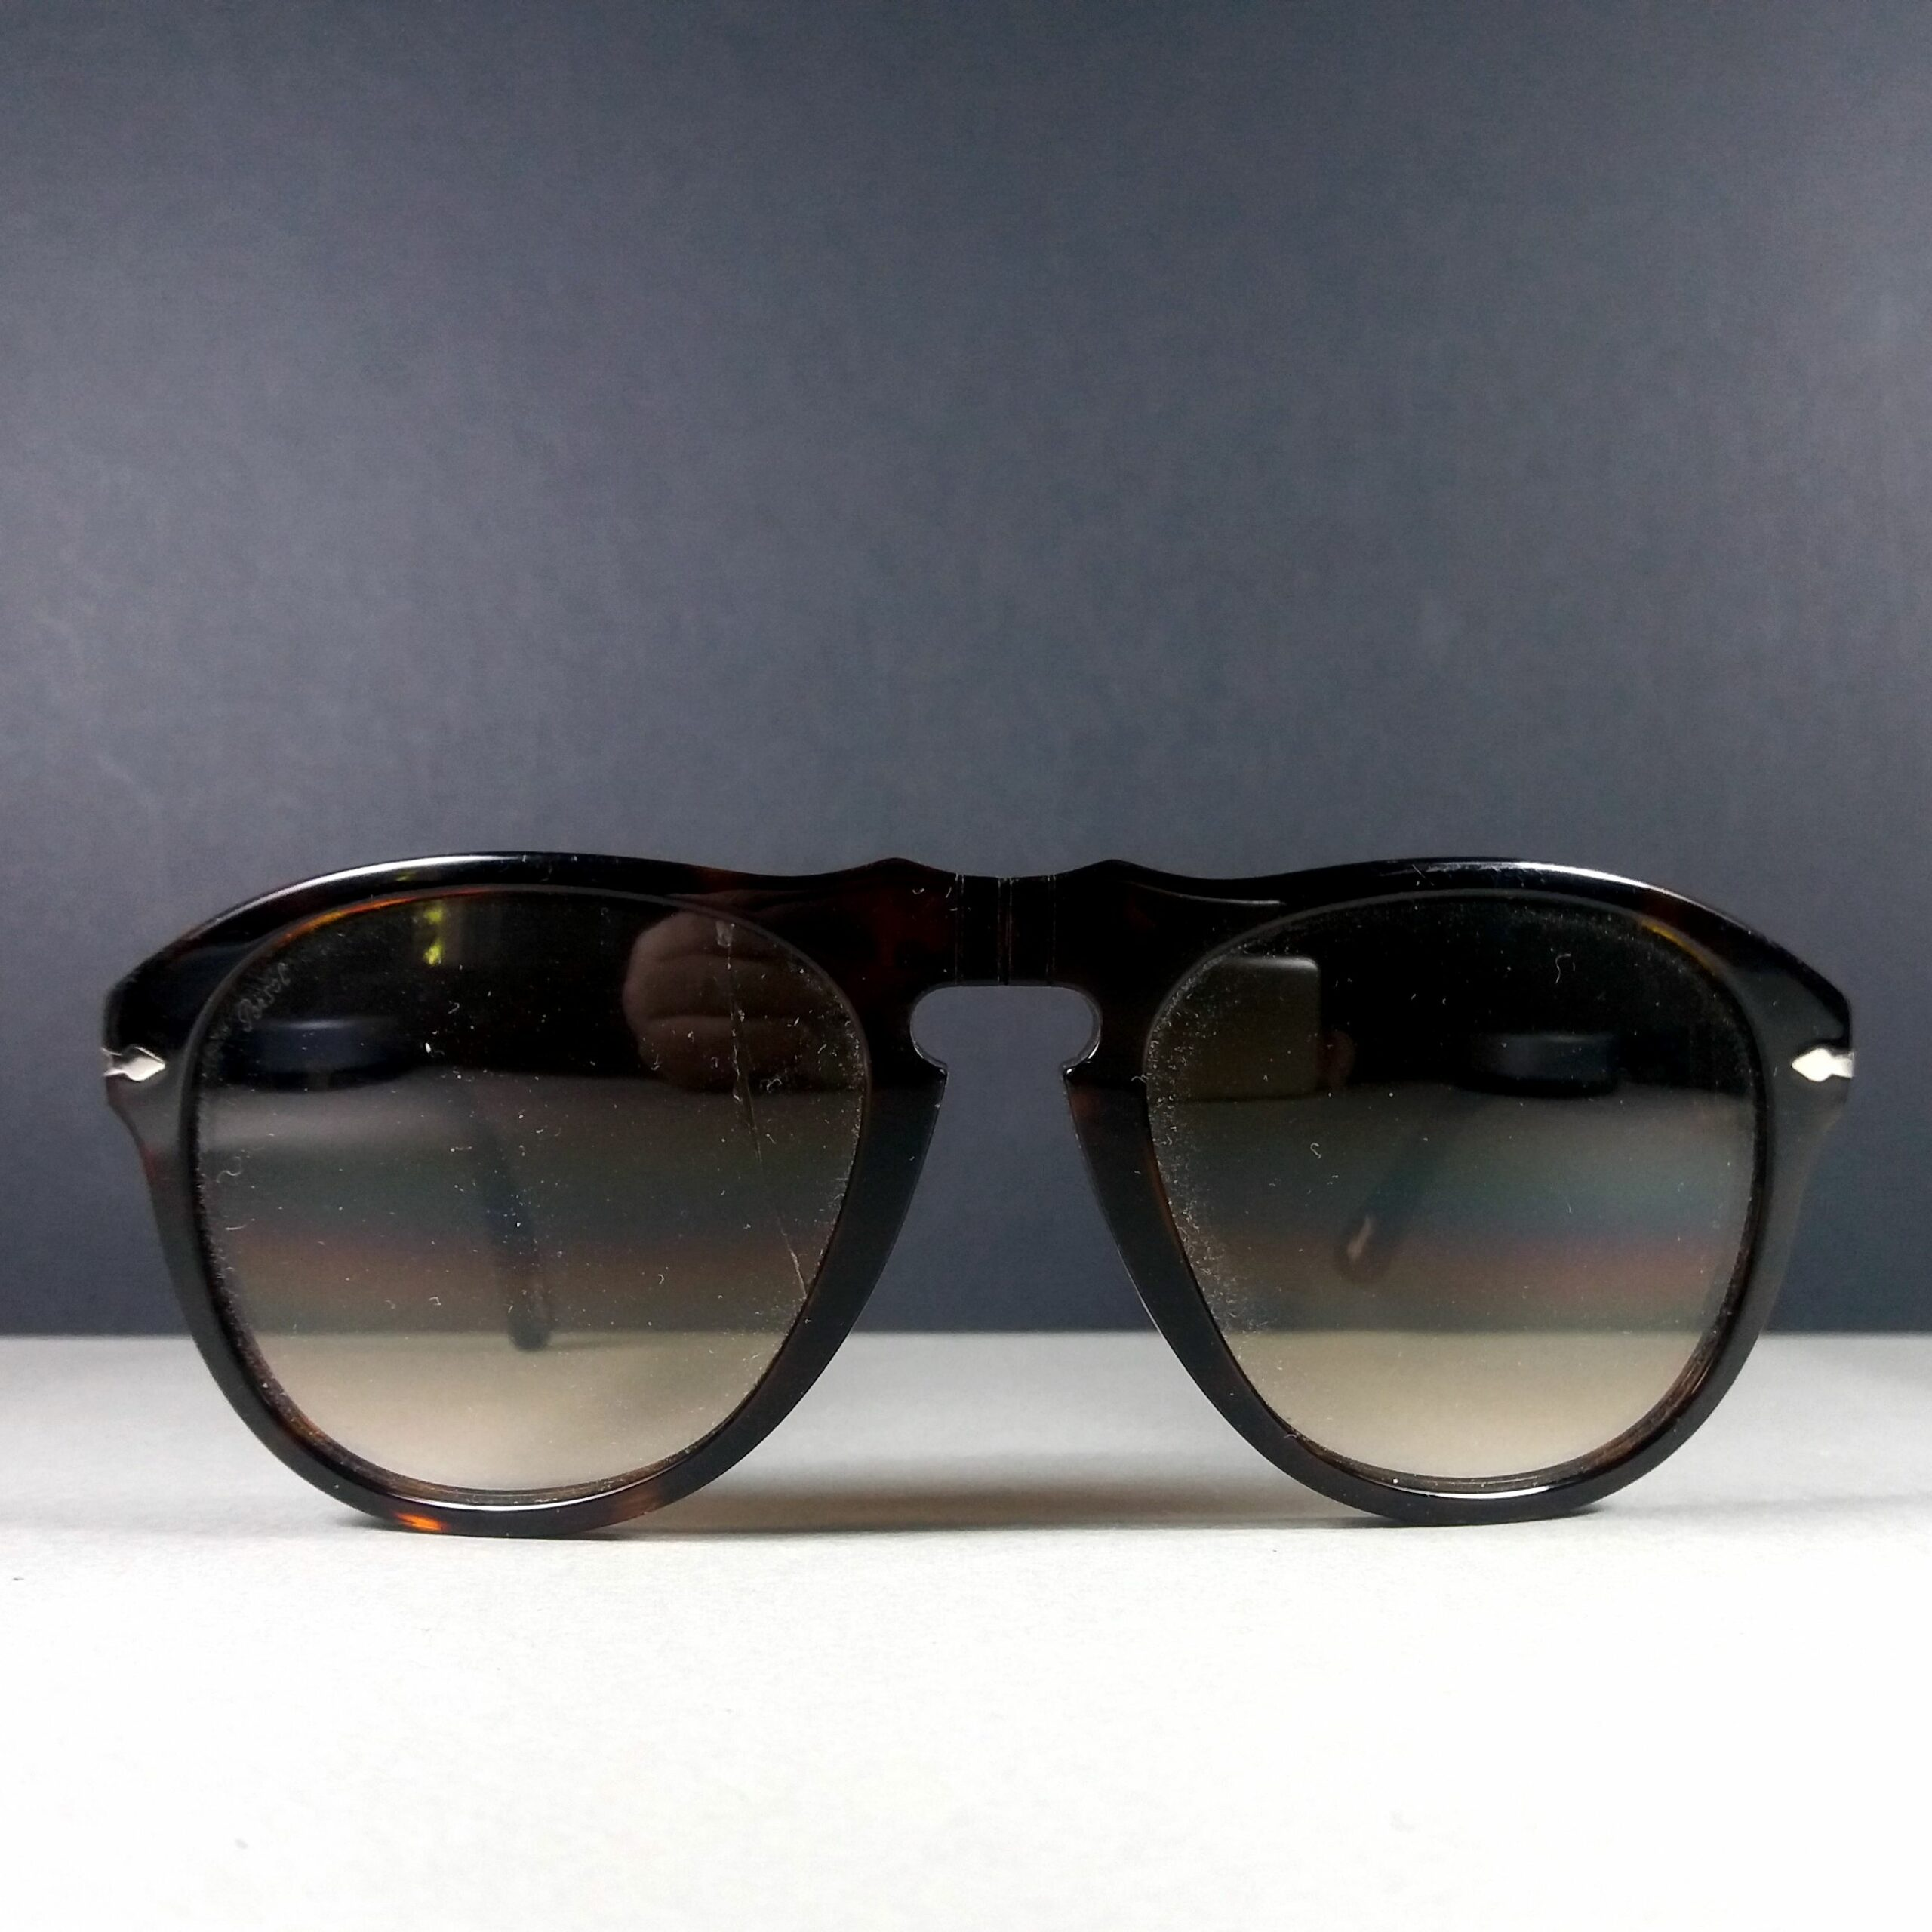 Persol 649 24/51 Havana Brown Tortoise Motif Gradient Sunglasses AS IS